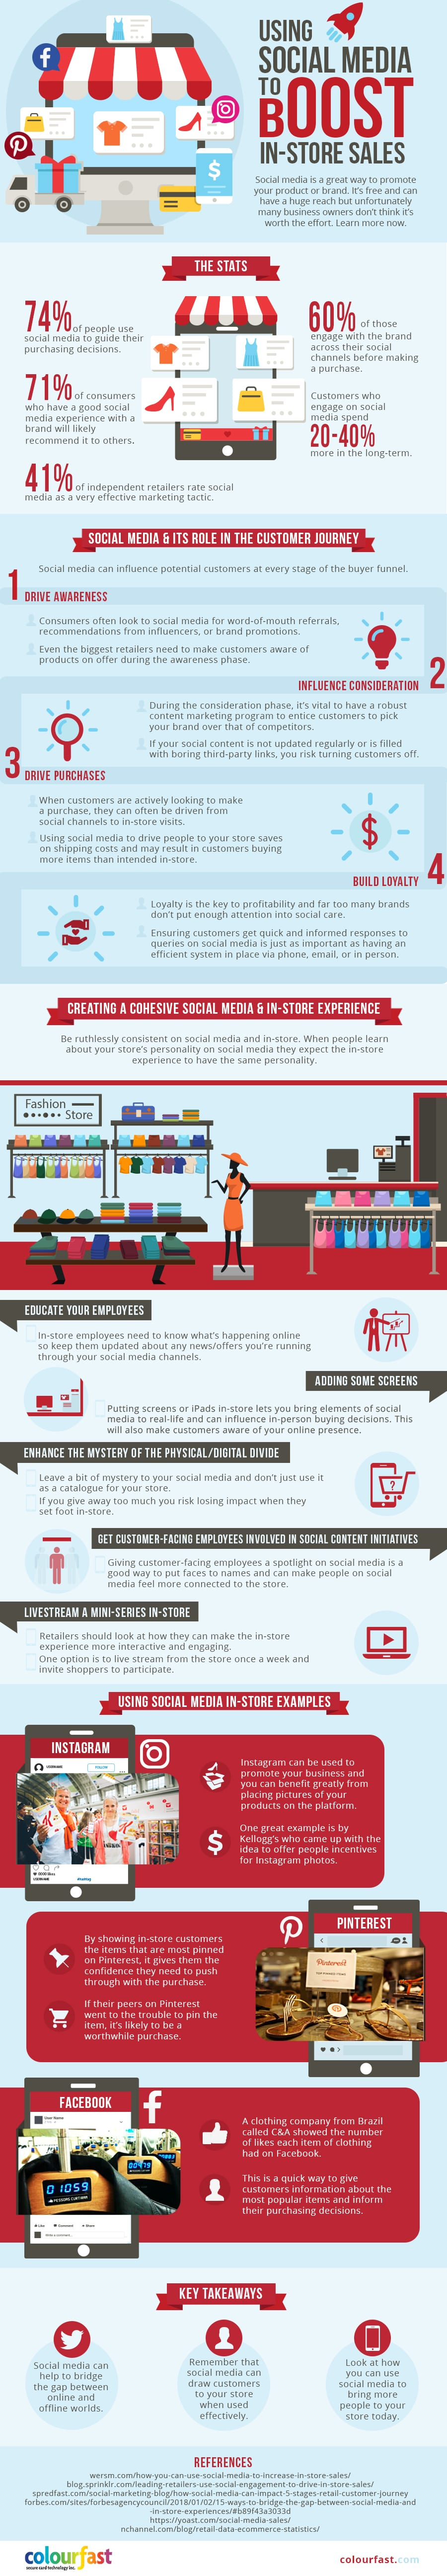 Using-Social-Media-to-Boost-In-Store-Sales